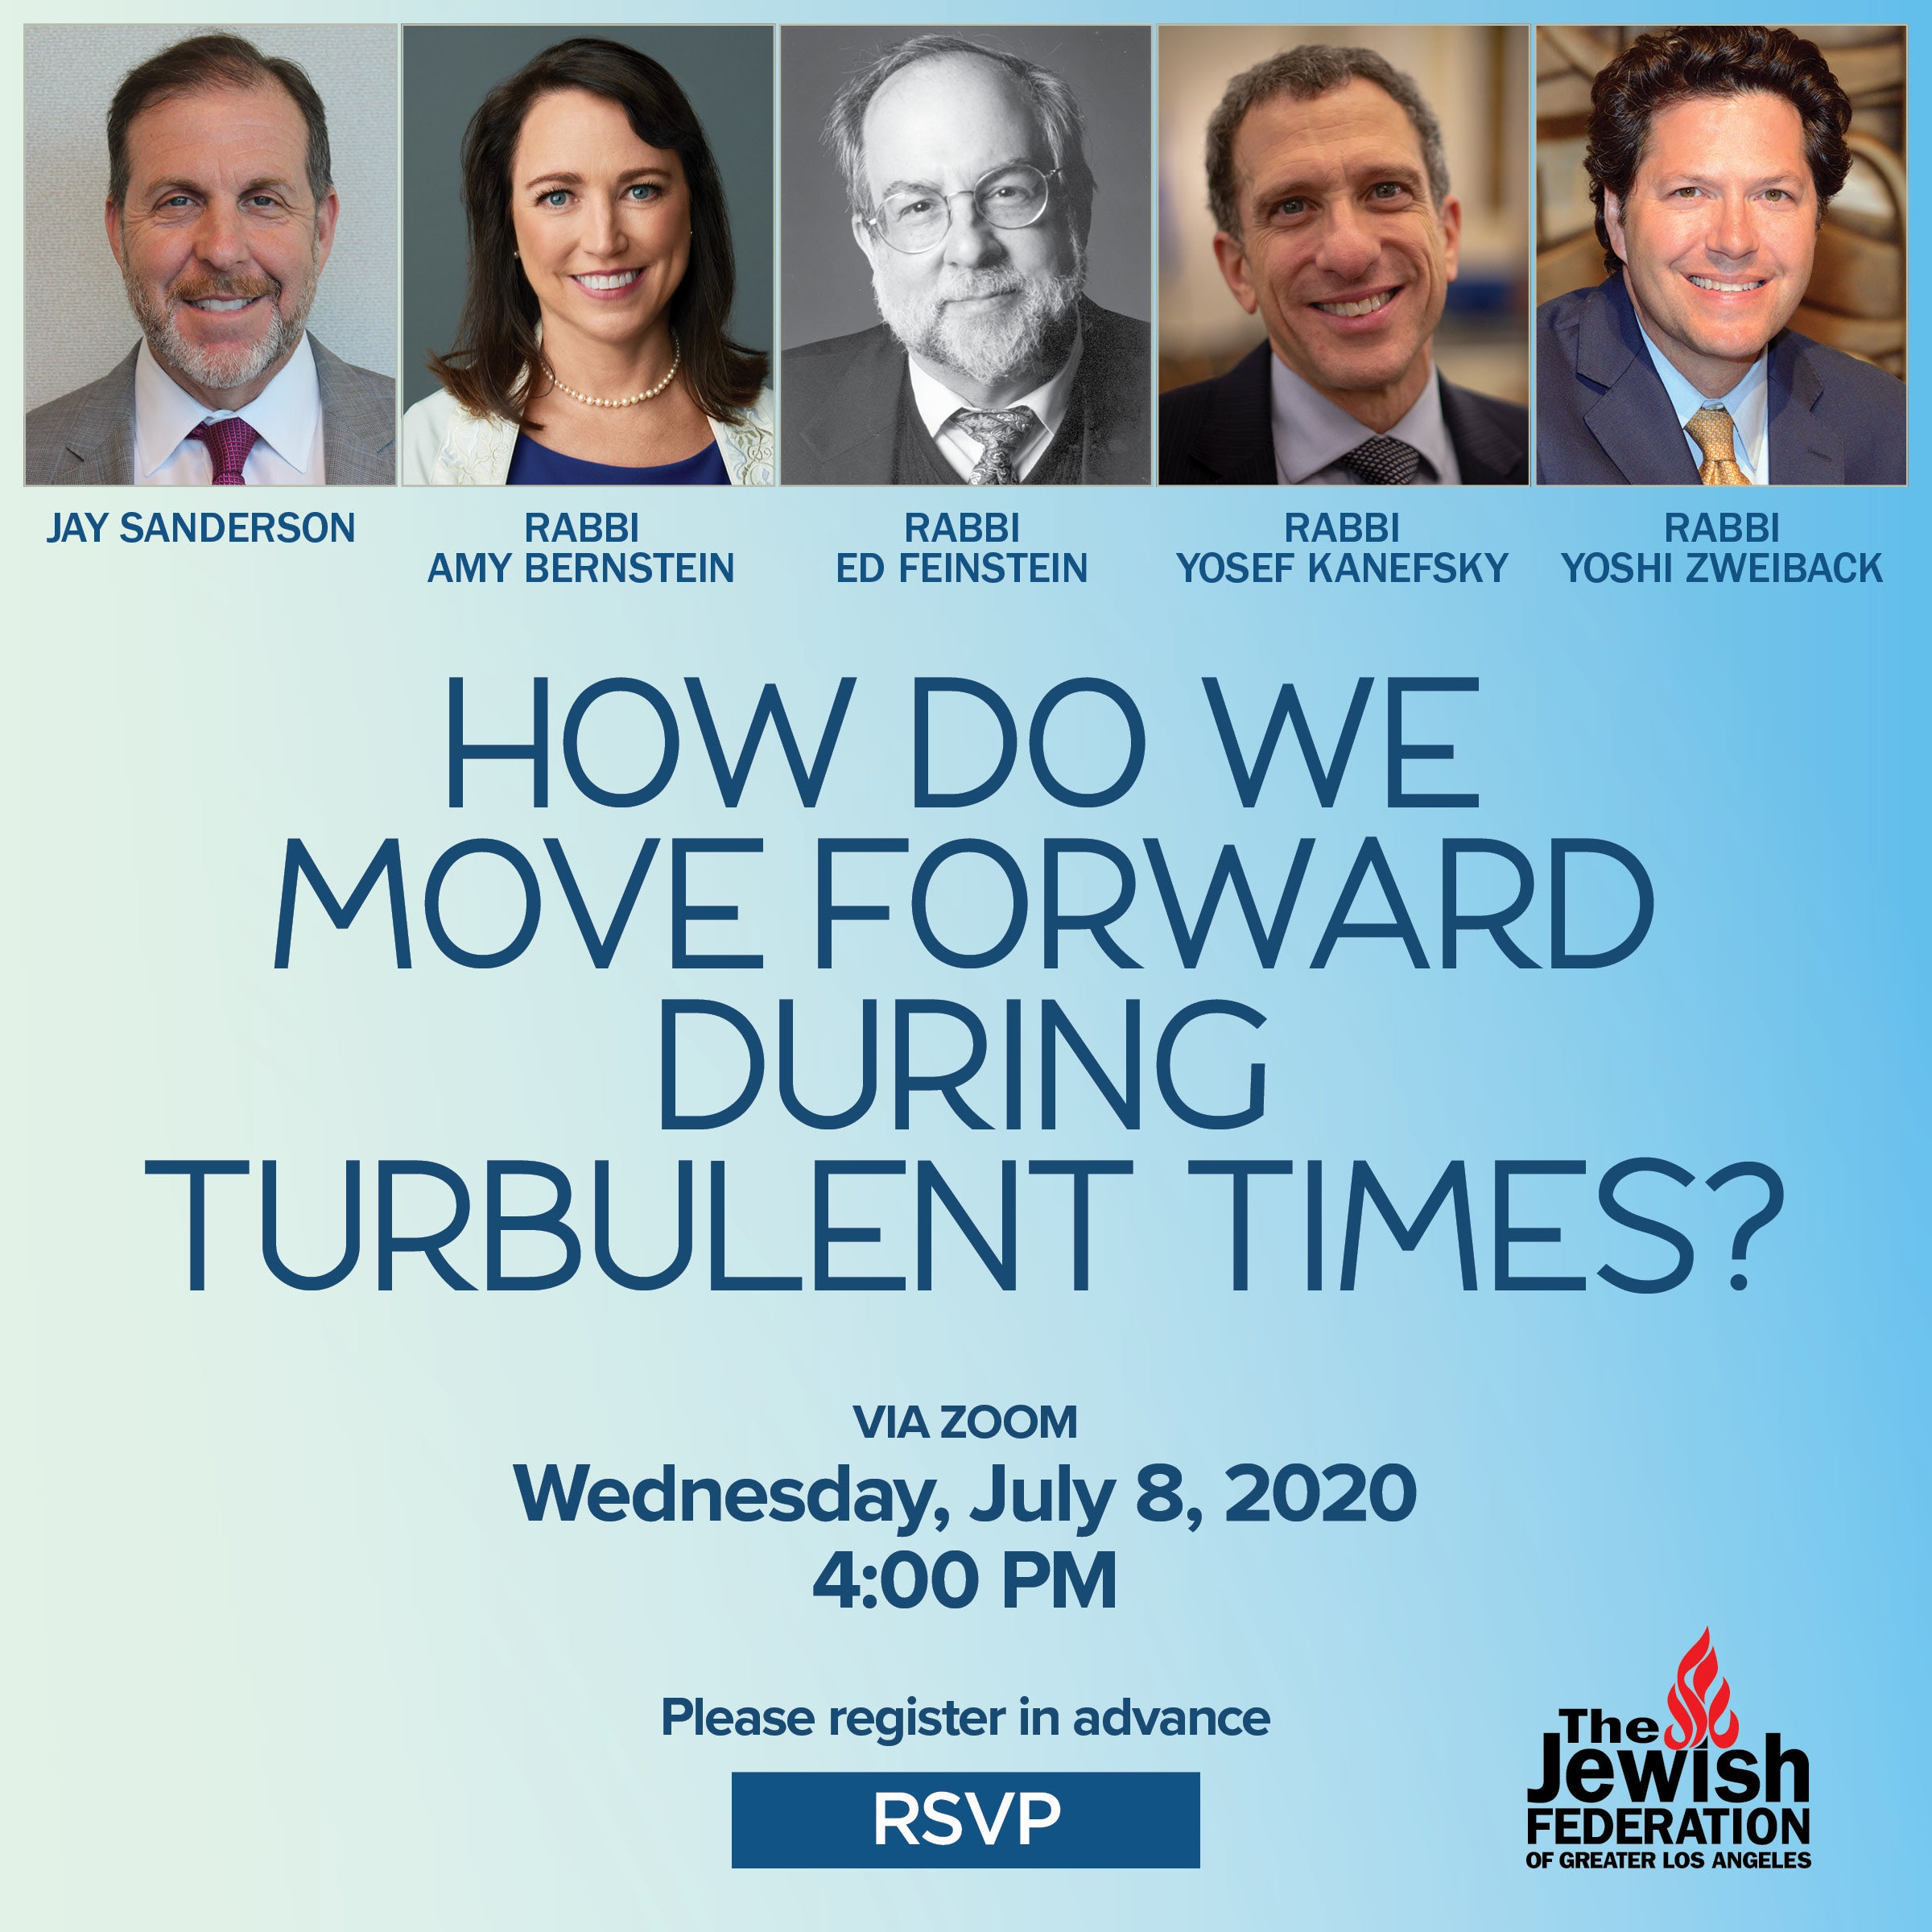 We Are Here | The Jewish Federation of Greater Los Angeles